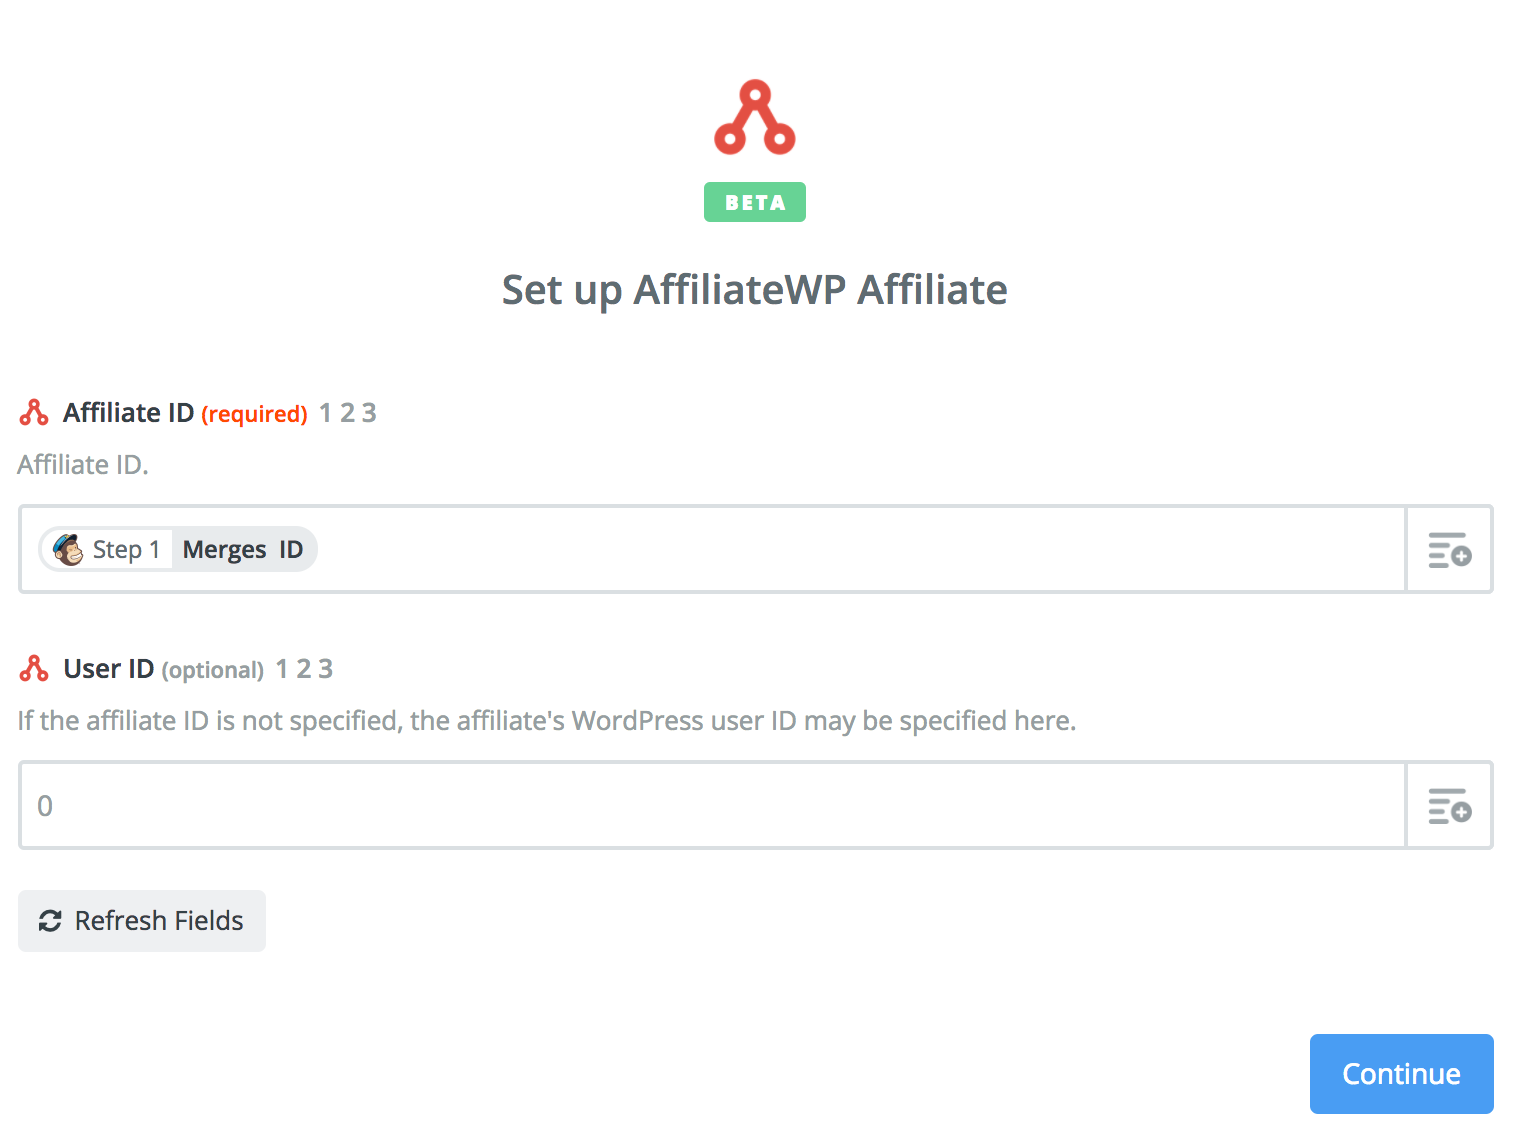 Mapping the ID created in Mailchimp to AffiliateWP